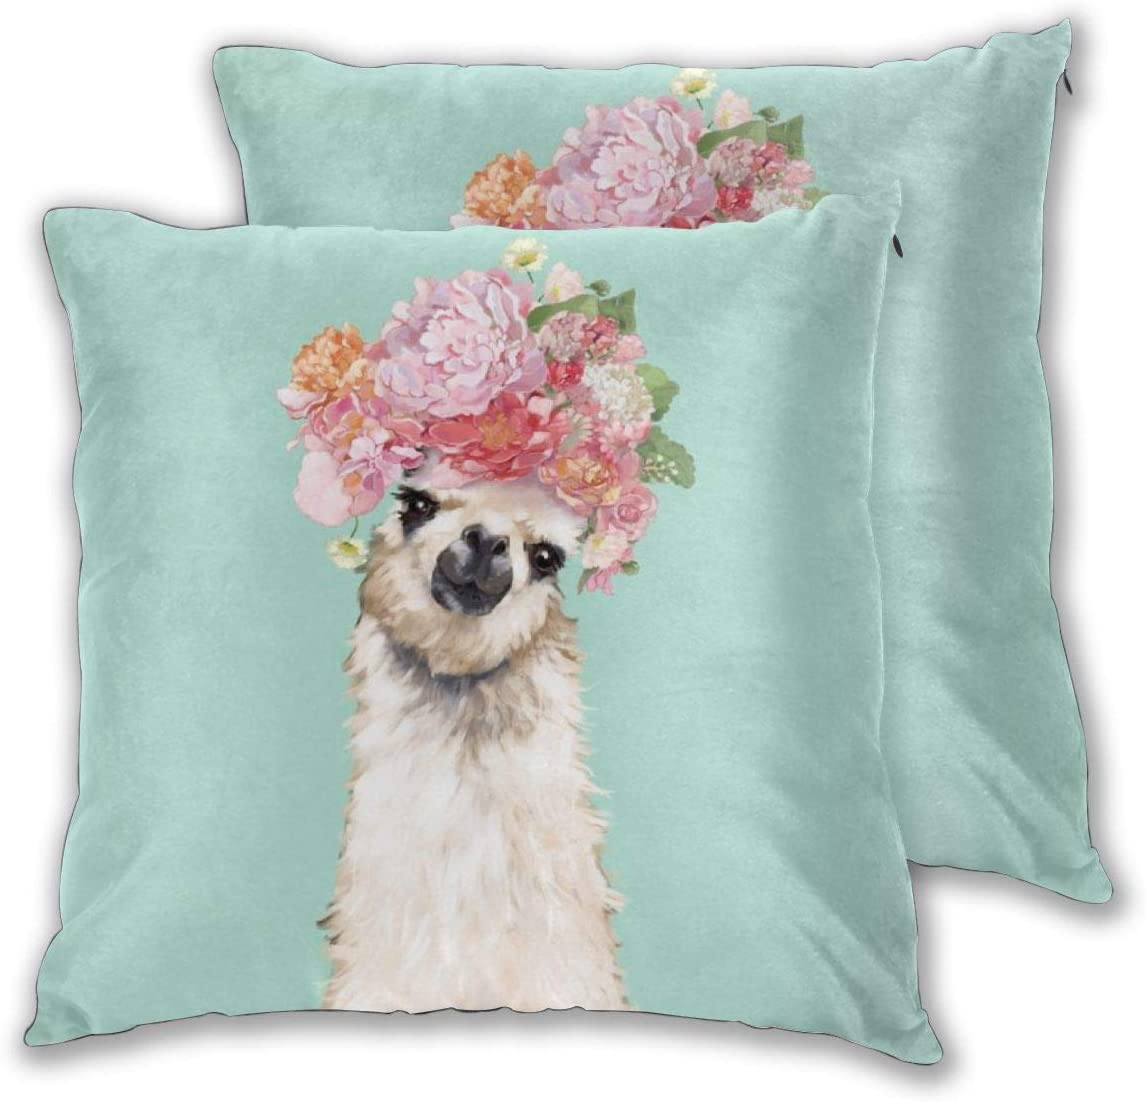 Nonebrand Throw Pillow Covers, Llama with Flowers Crown Modern Decorative Pillowcase Double Side Print Cushion Covers for Sofa Couch Bed 18x18 Inches,Set of 2